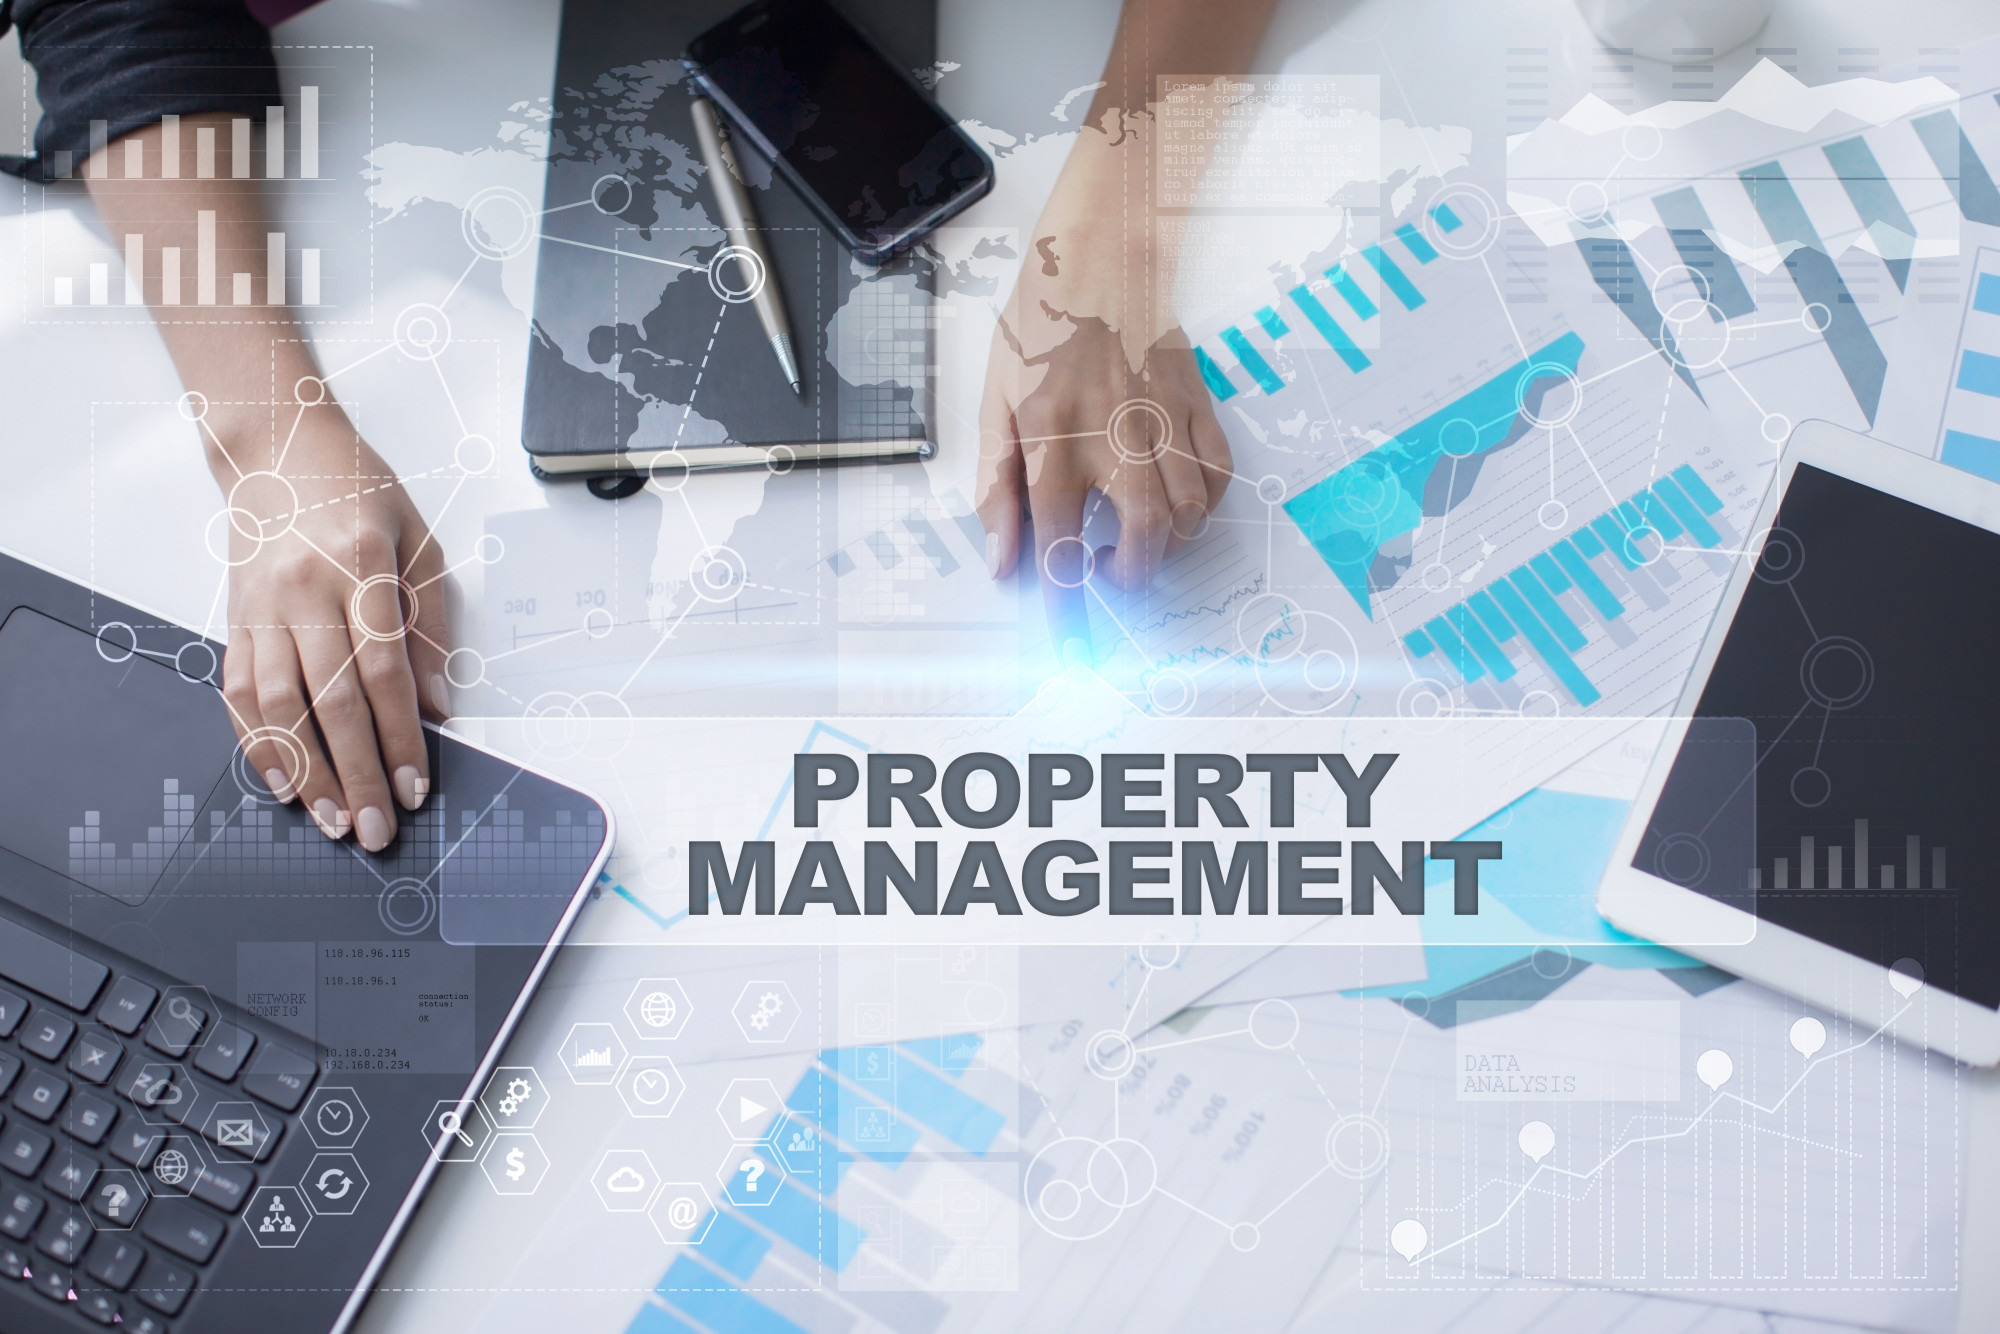 property management text over office background